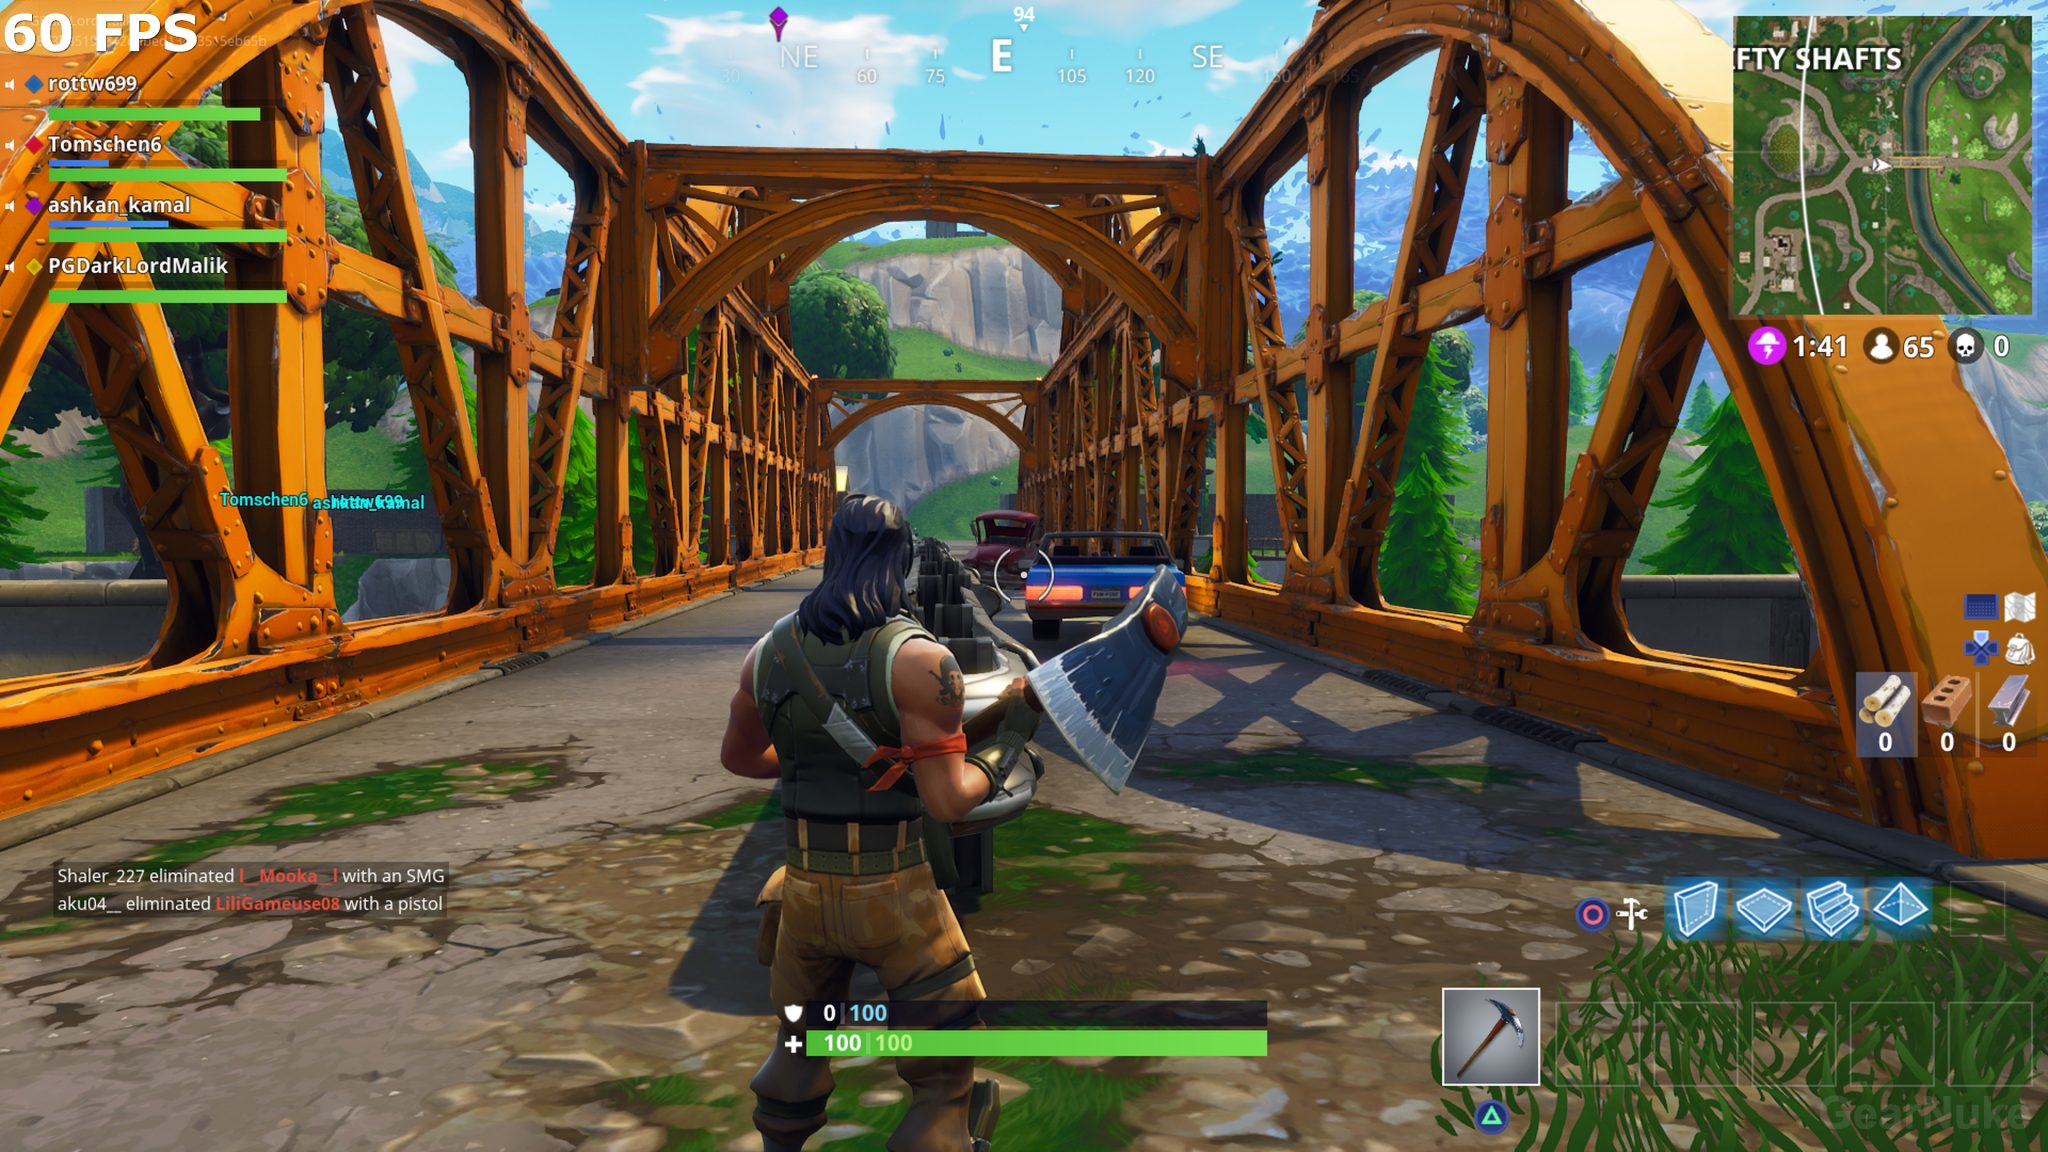 how to fix fps drops in fortnite